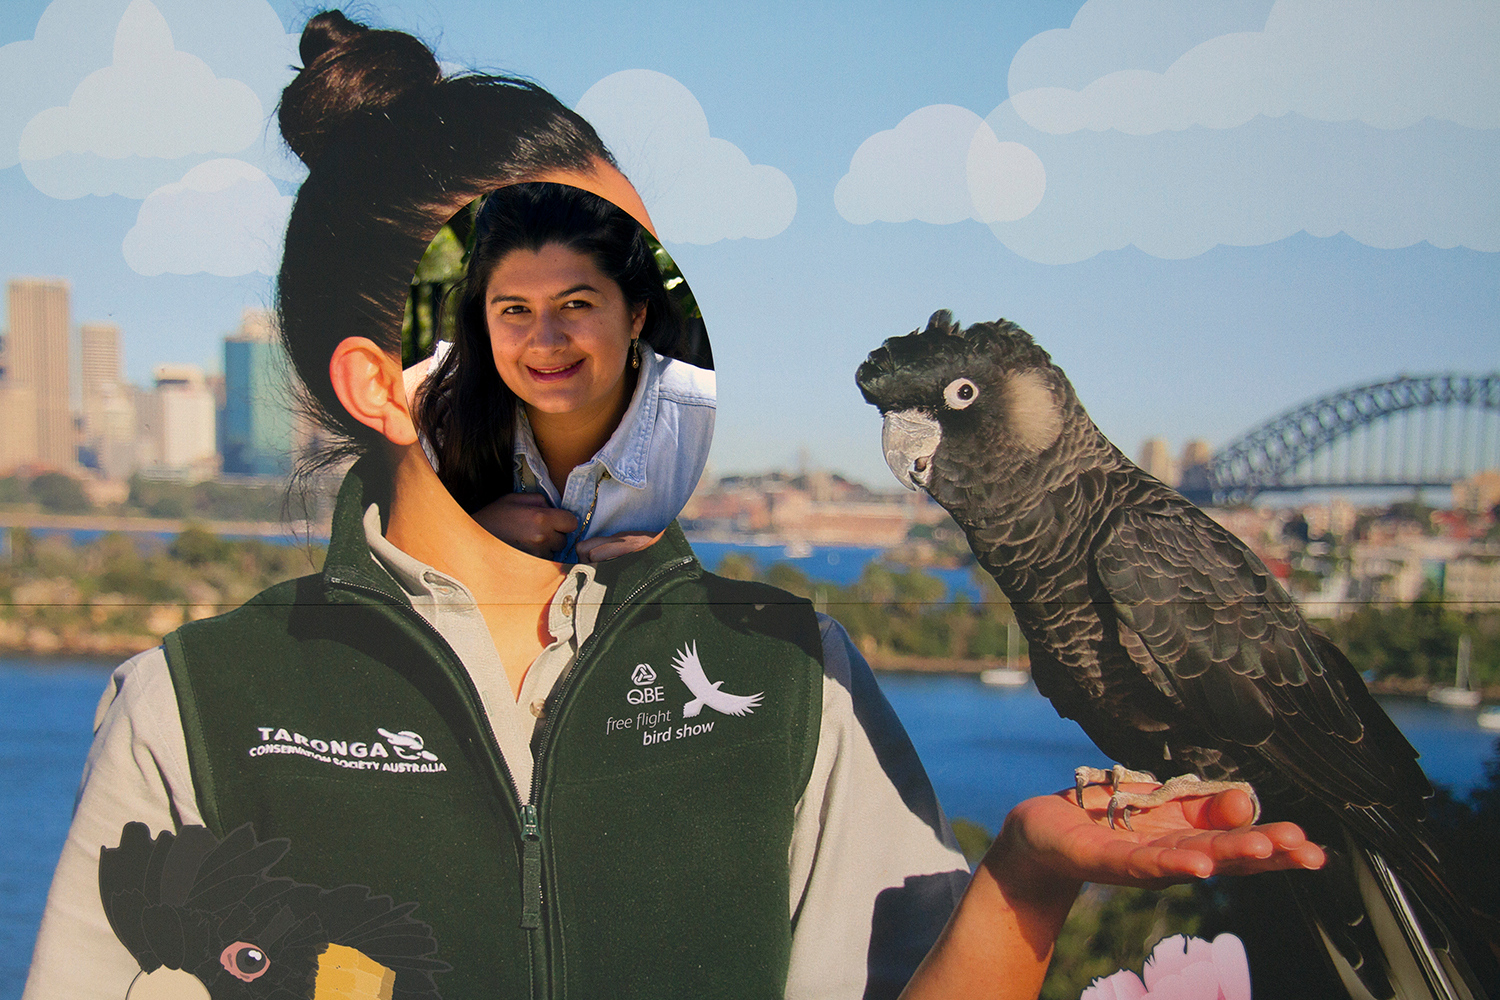 taronga keeper